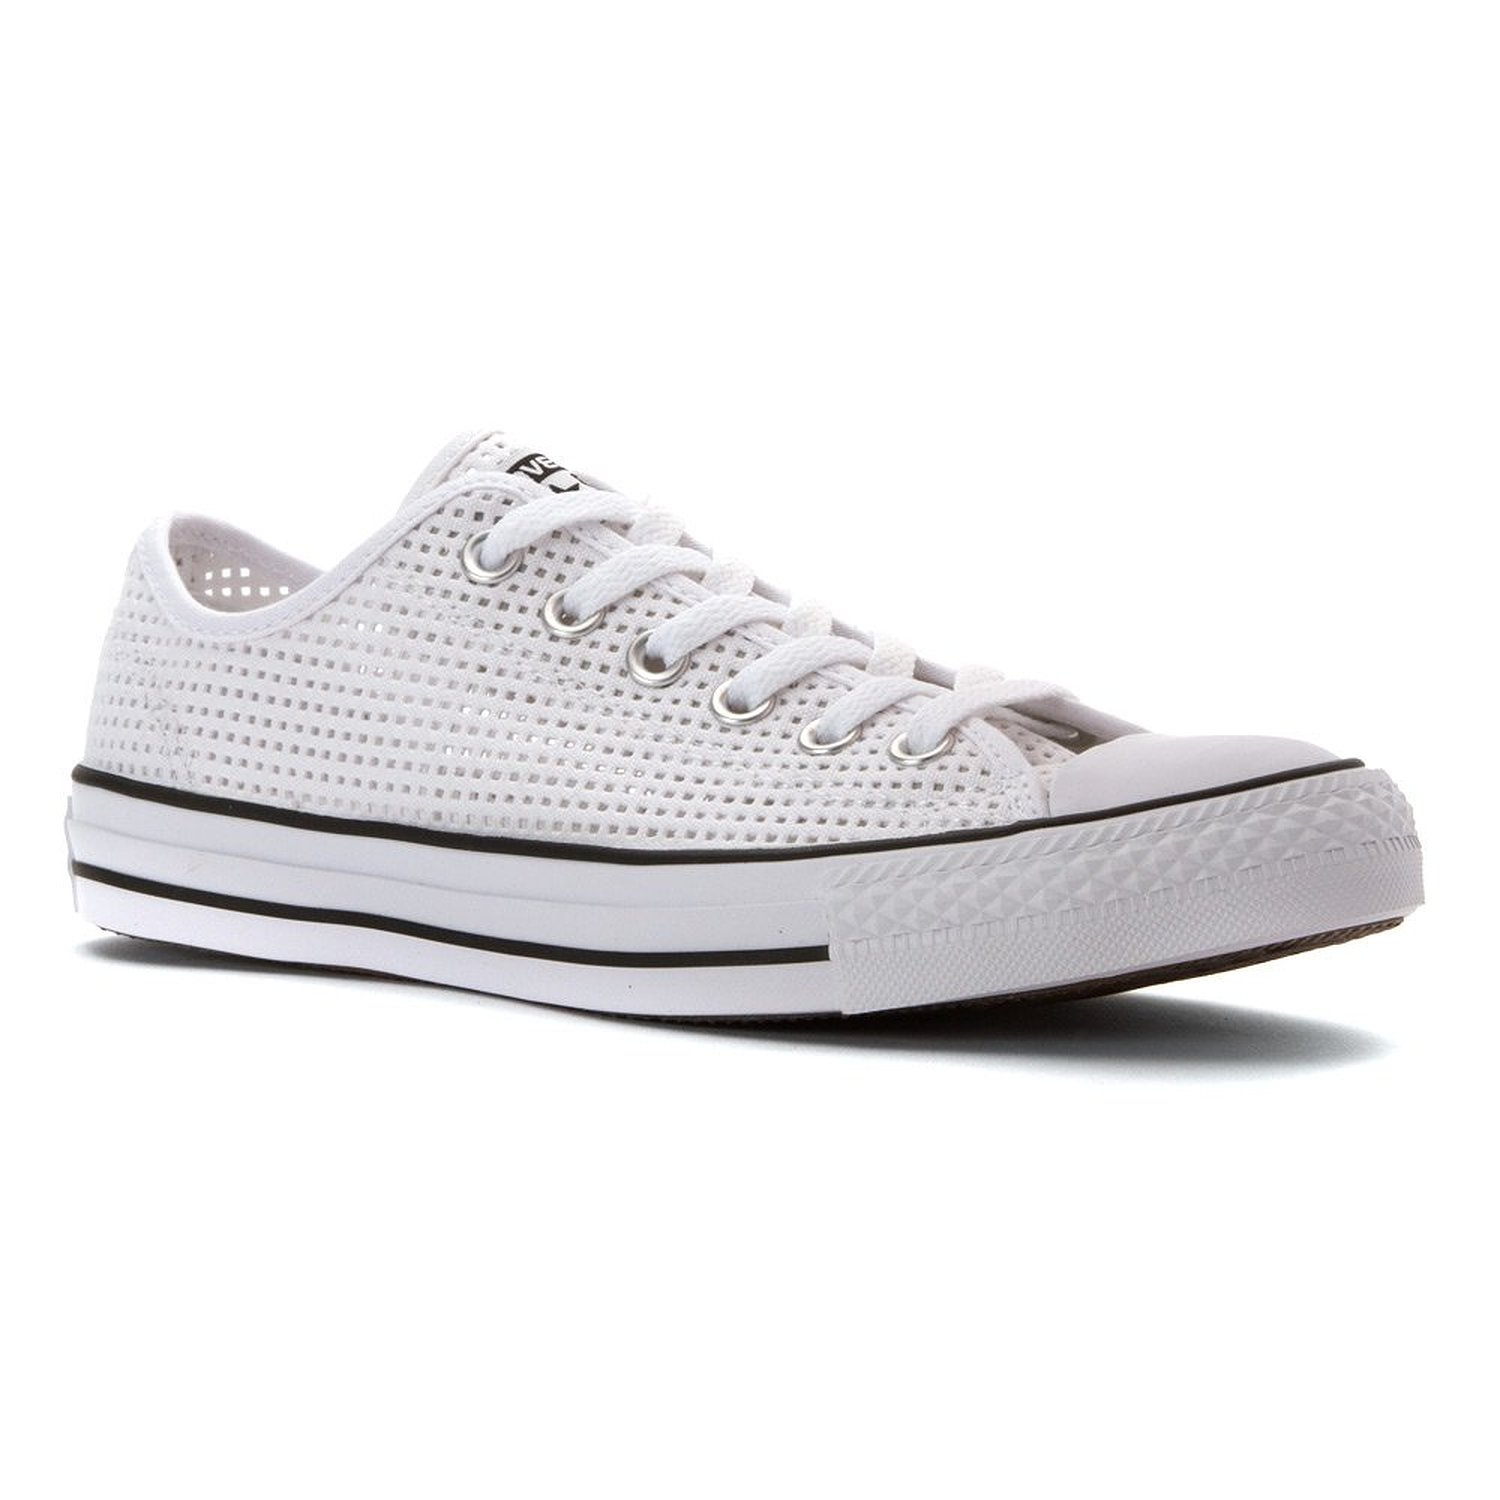 65862118497c Get Quotations · Converse Women s Chuck Taylor All Star Ox Low Top Sneakers